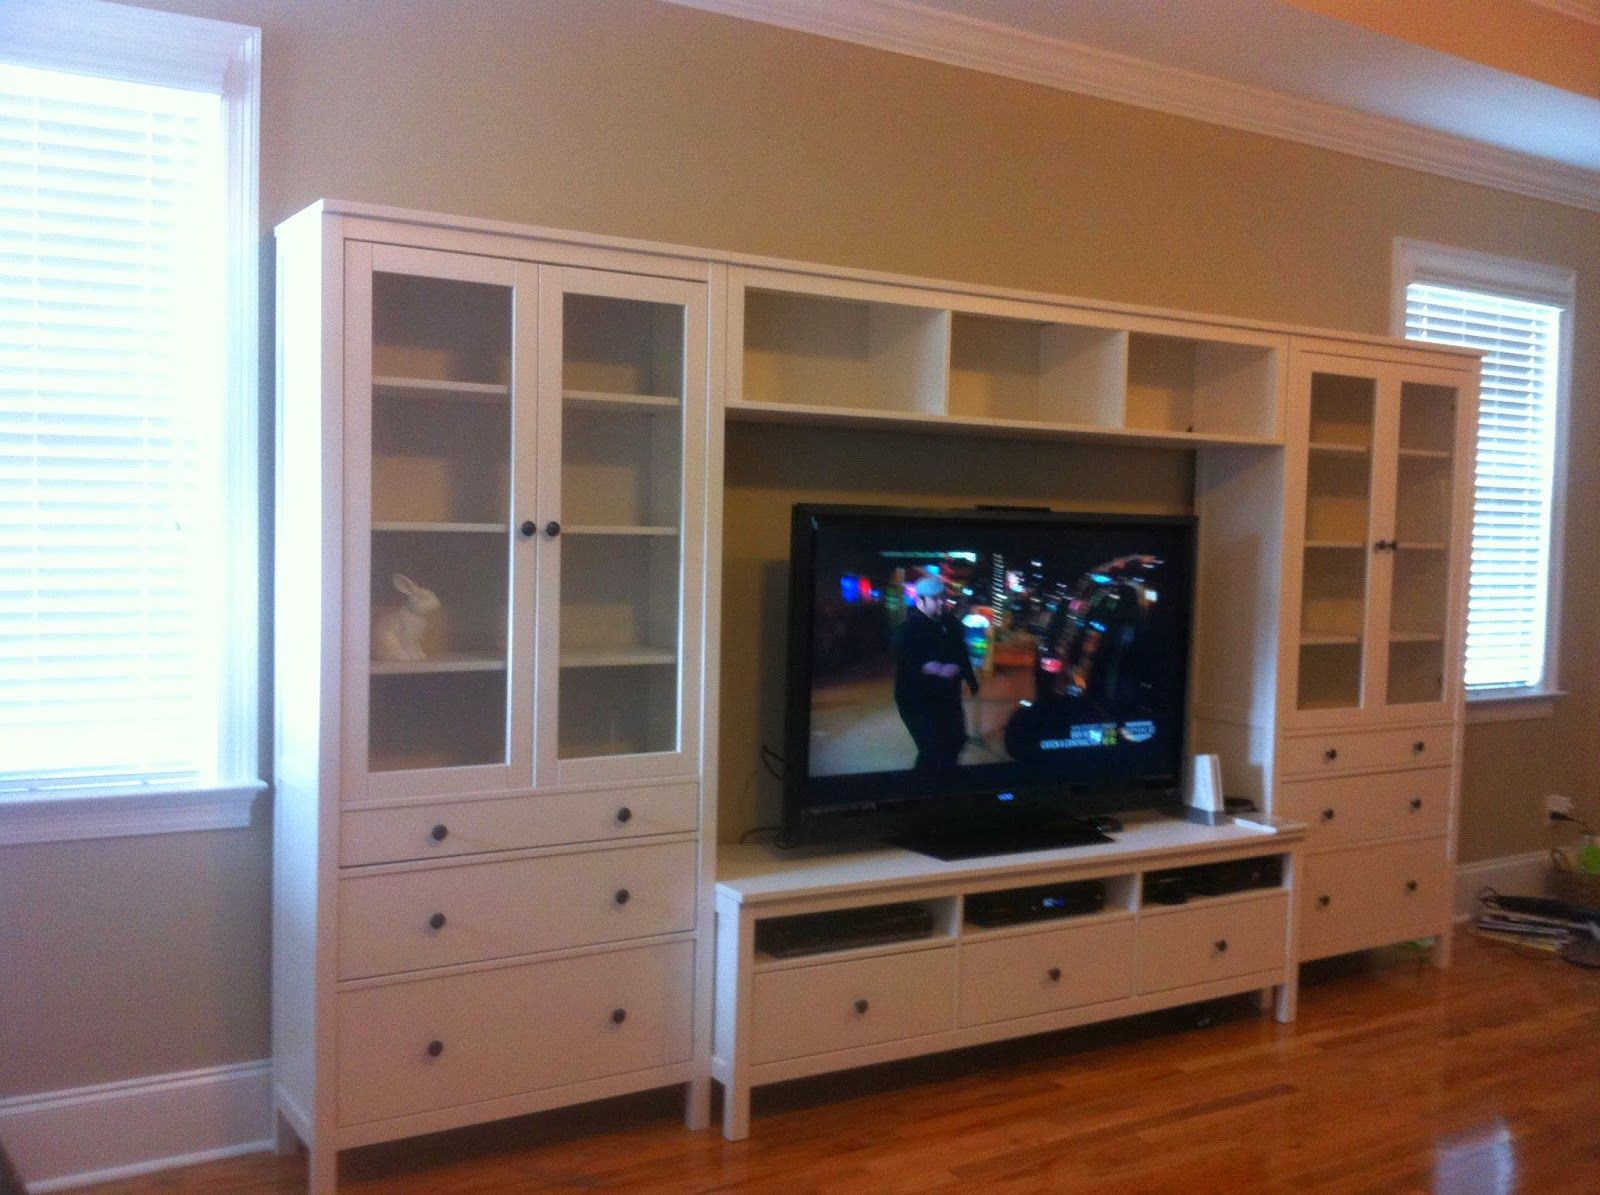 Ikea hemnes entertainment center home sweet home common Ikea media room ideas